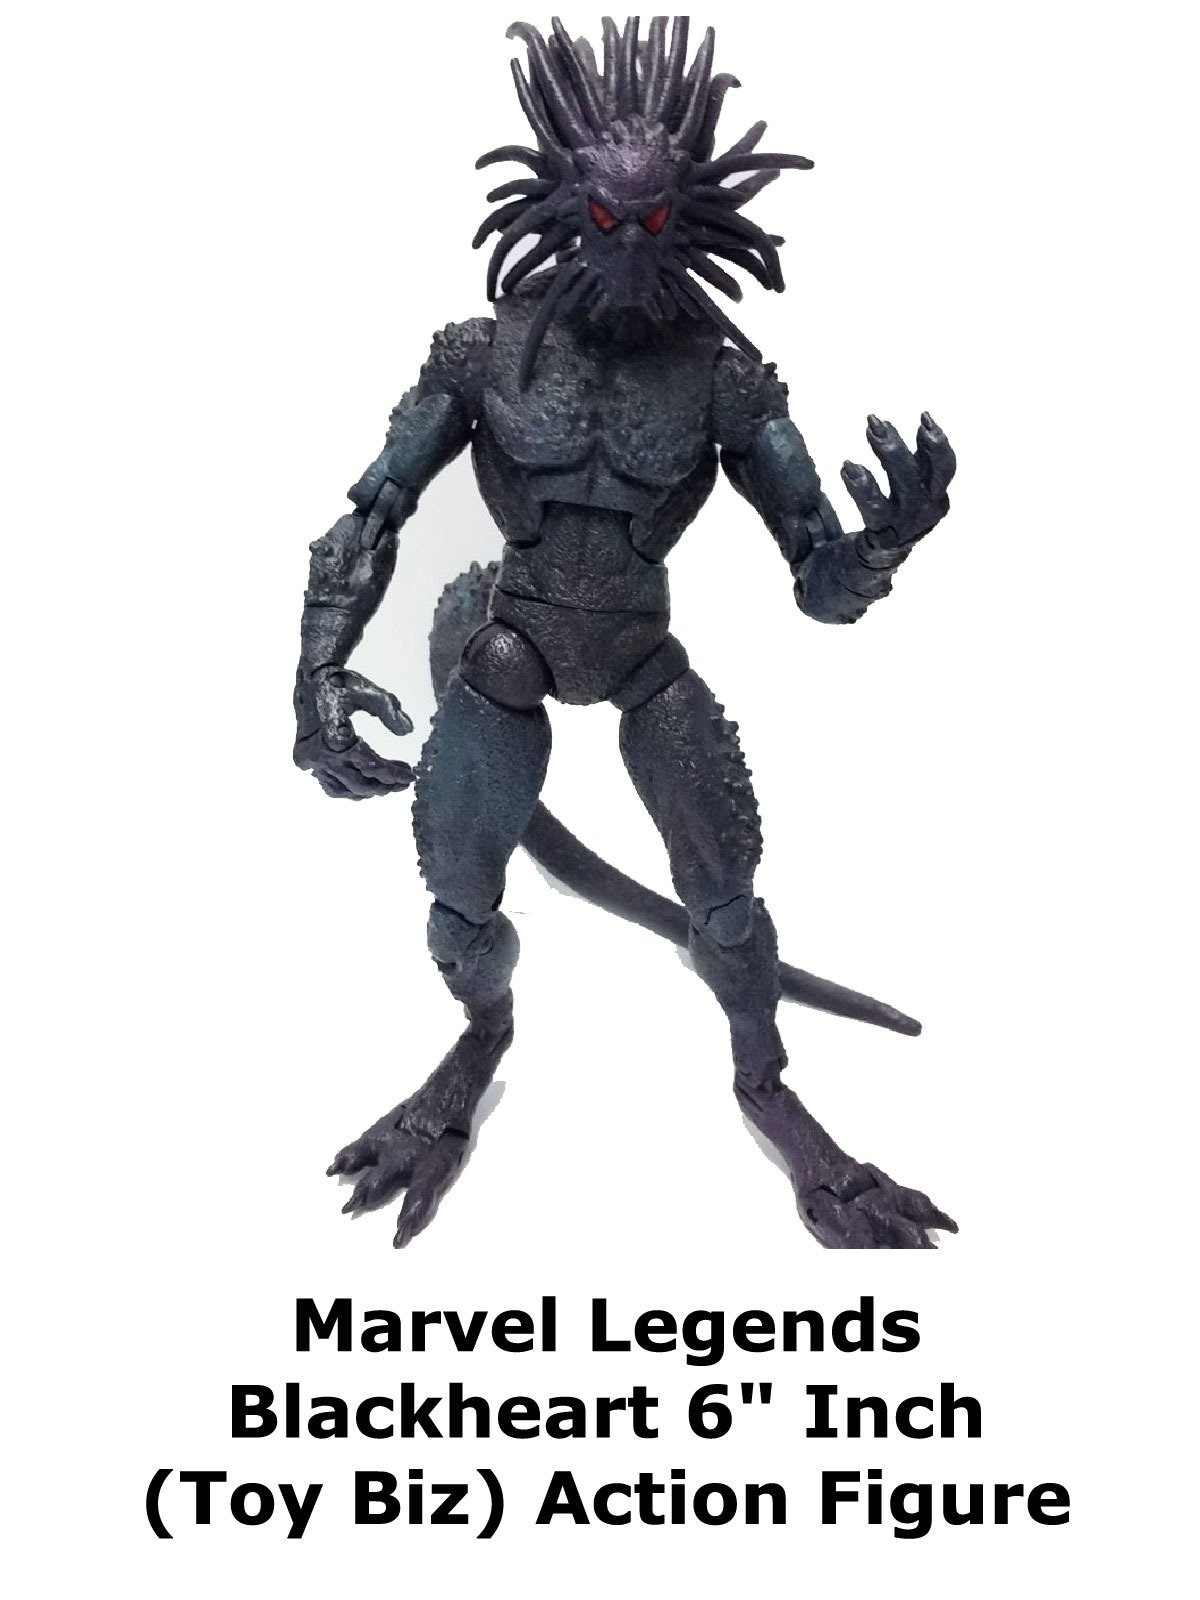 "Review: Marvel Legends Blackheart 6"" Inch (Toy Biz) Action Figure"